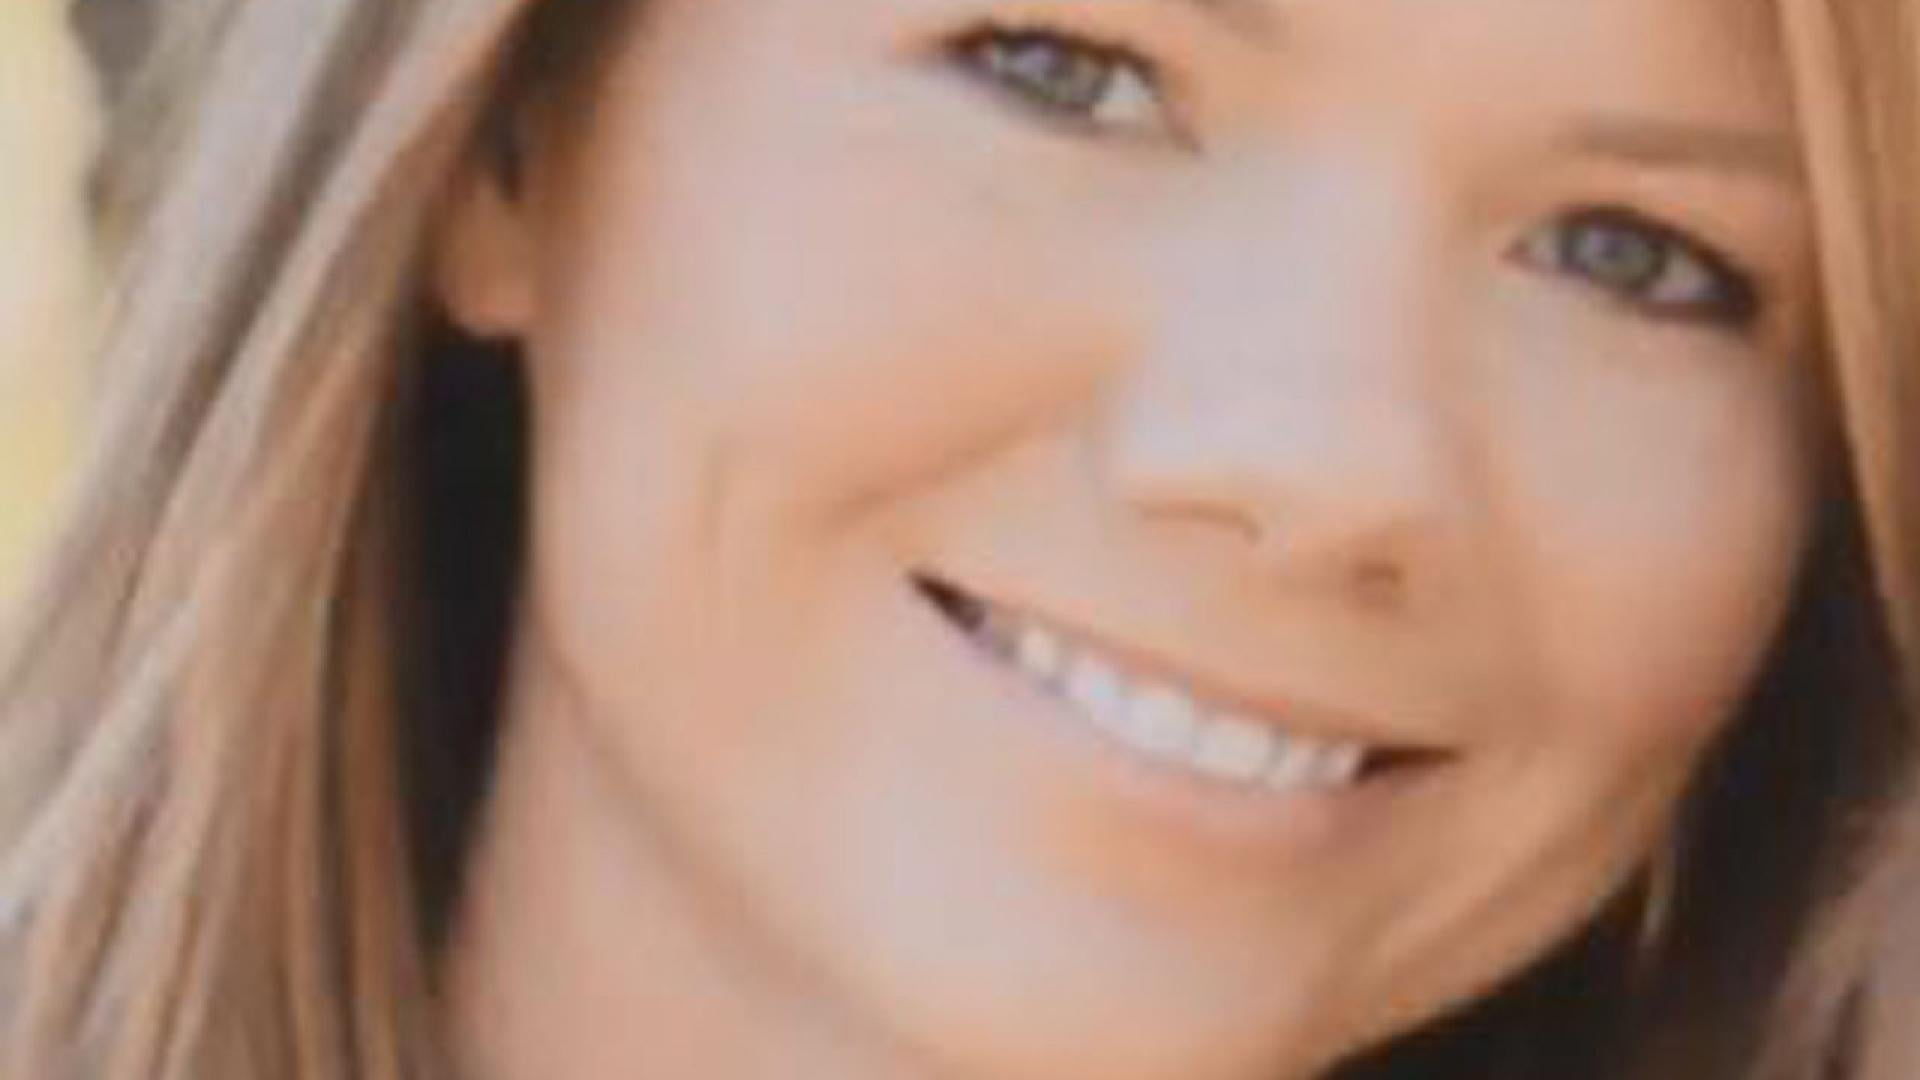 Kelsey Berreth's fiance has been arrested in connection with her murder.